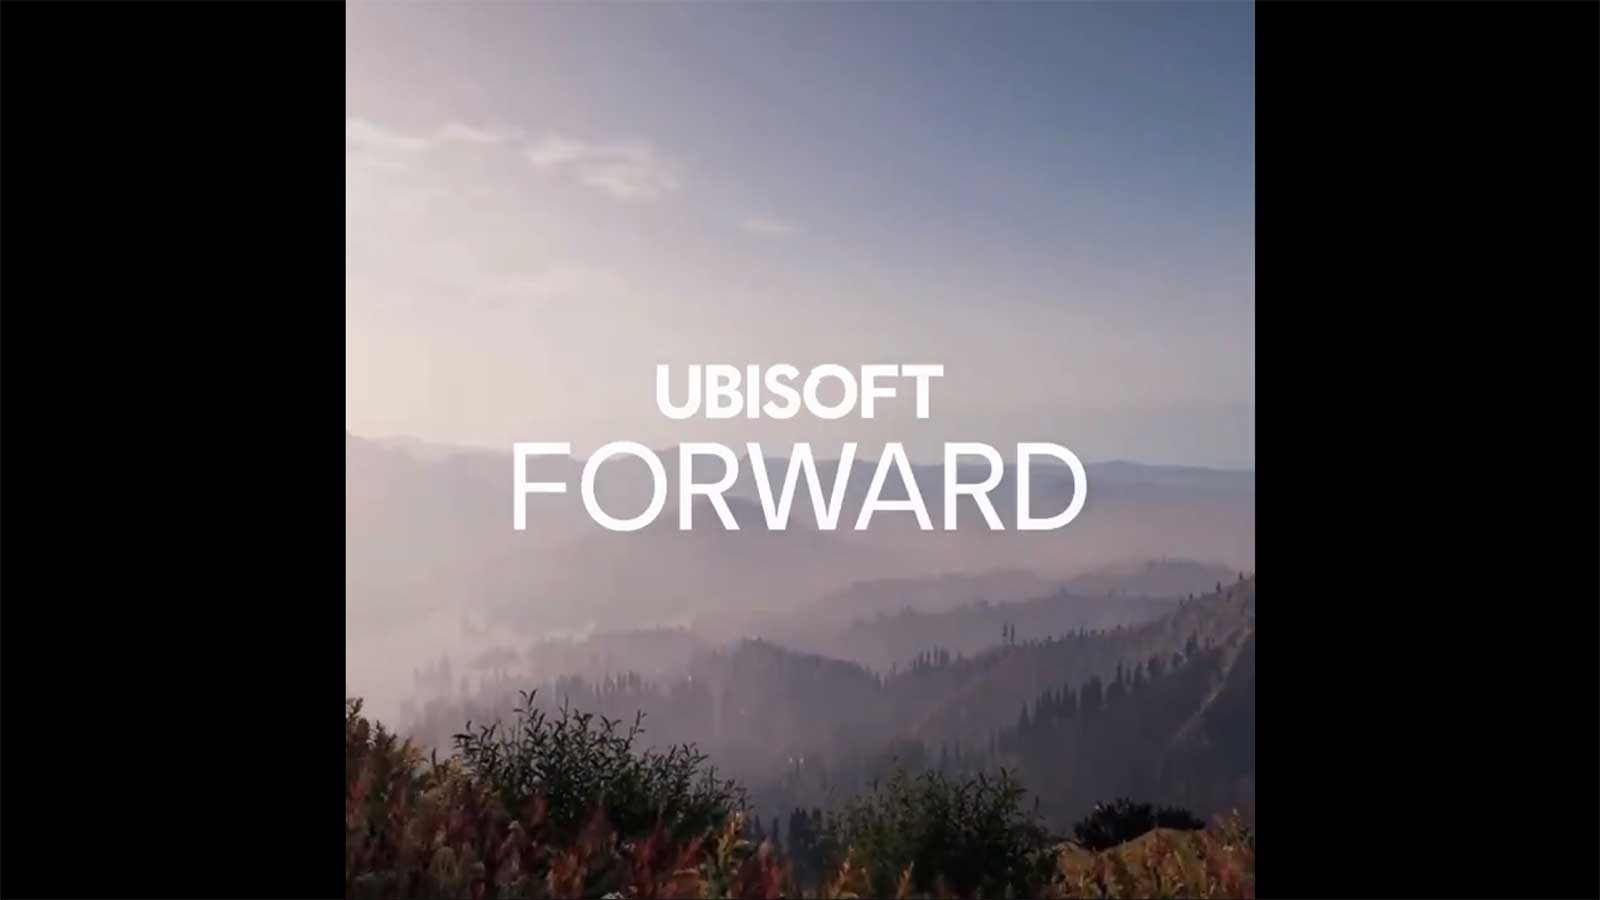 Ubisoft Forward babt